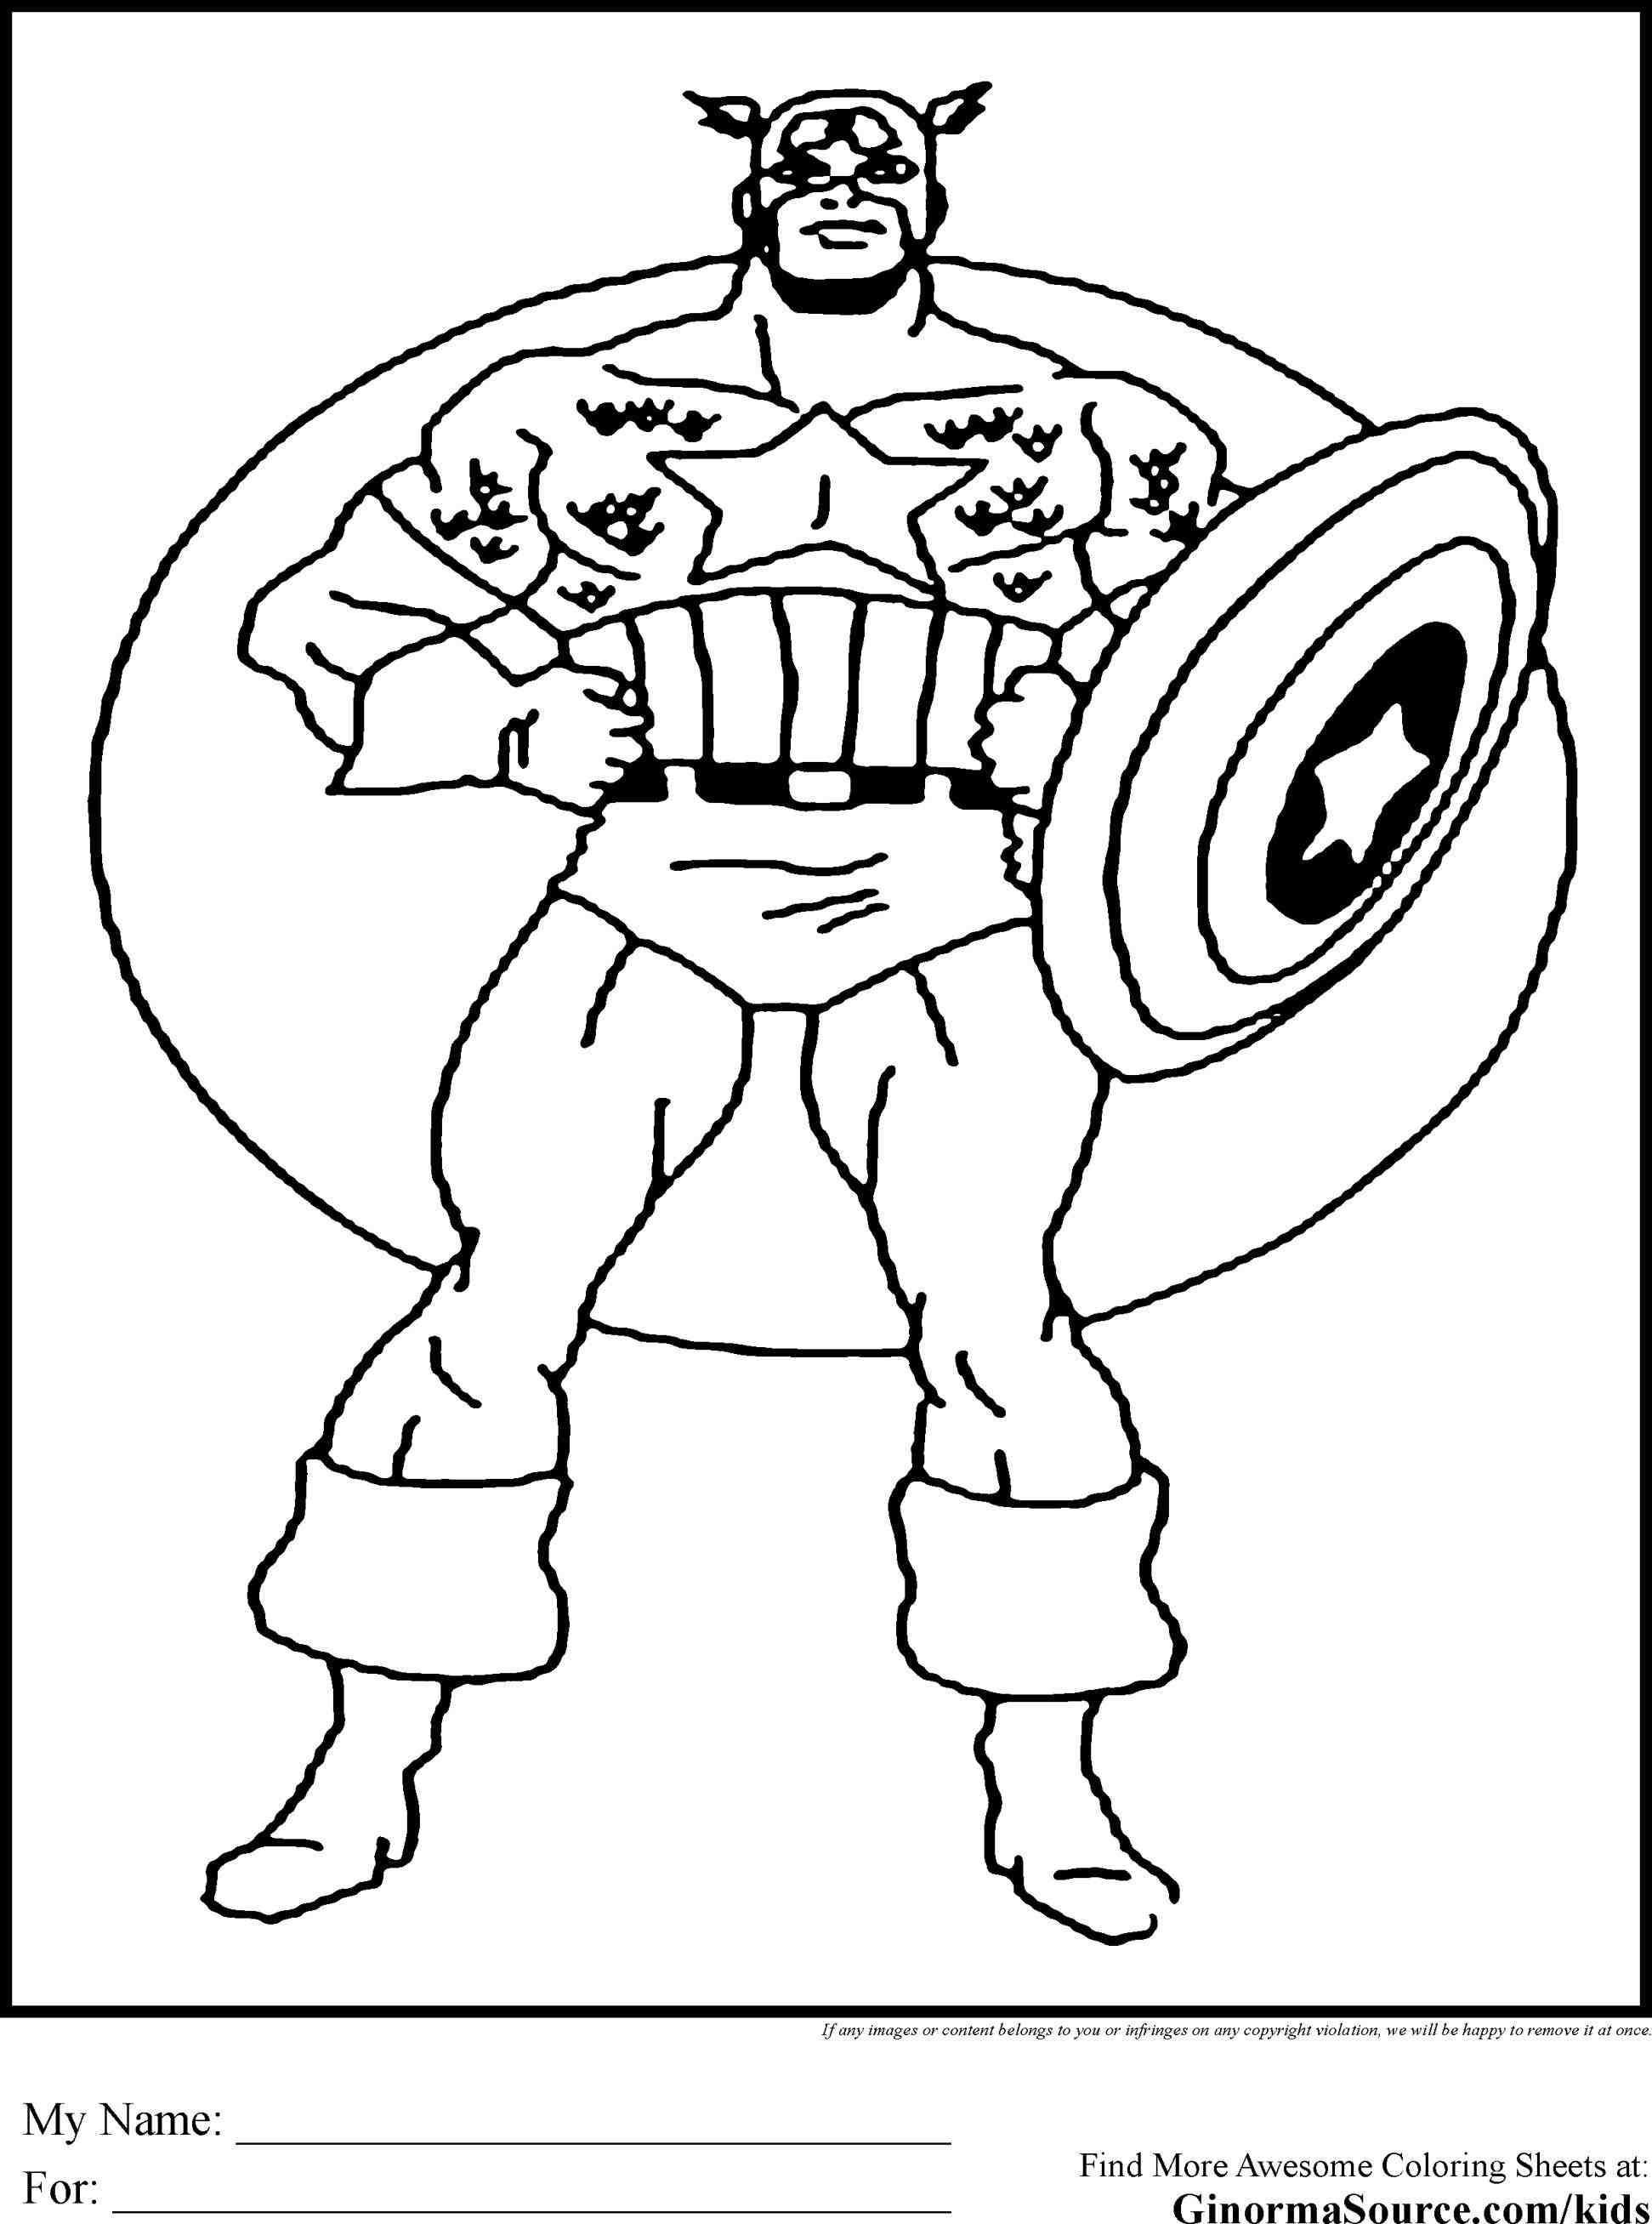 Captain America Face Coloring Pages - Coloring Home